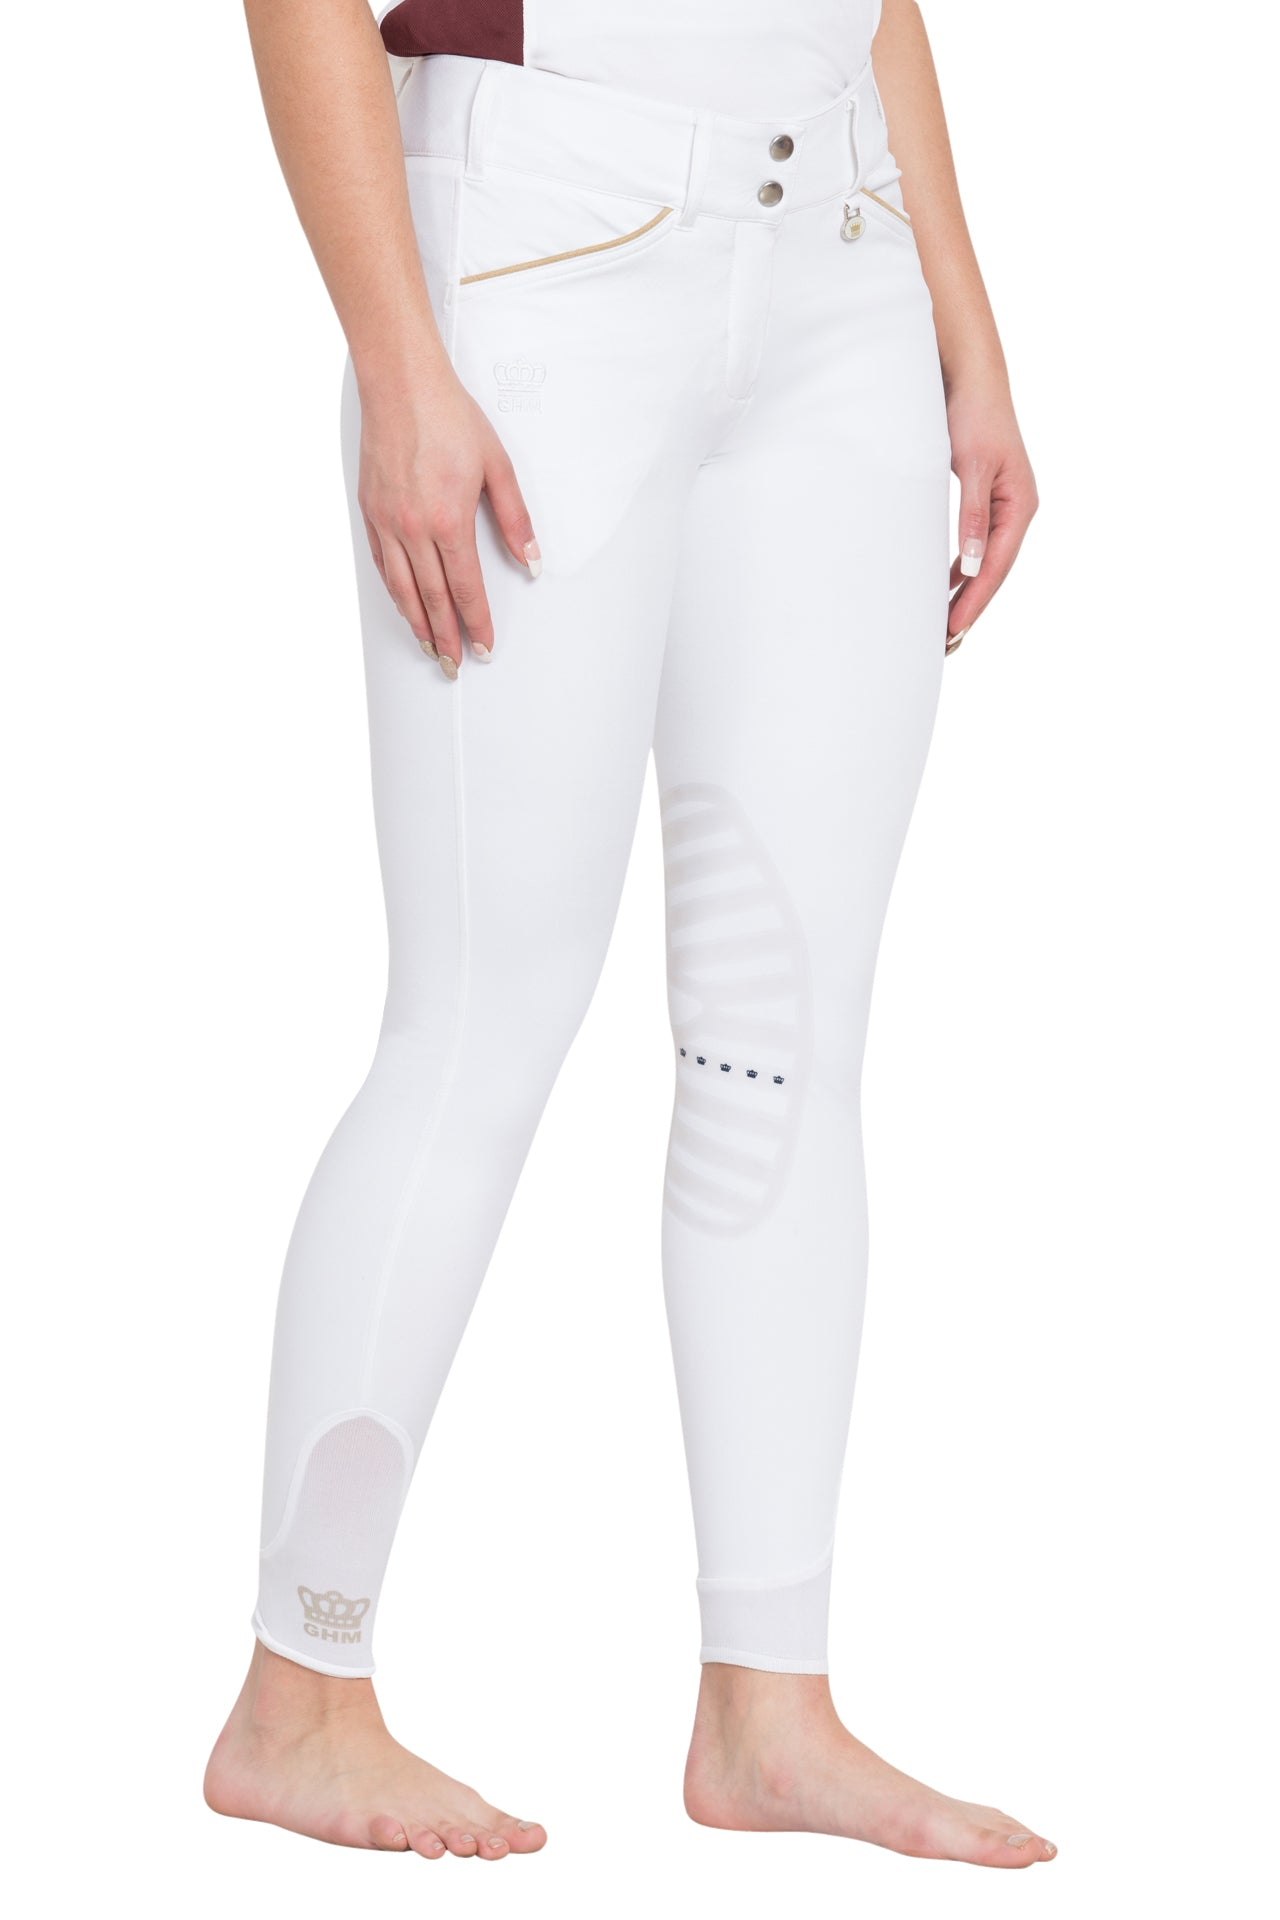 George H Morris Ladies Add Back Silicone Knee Patch Breeches_679